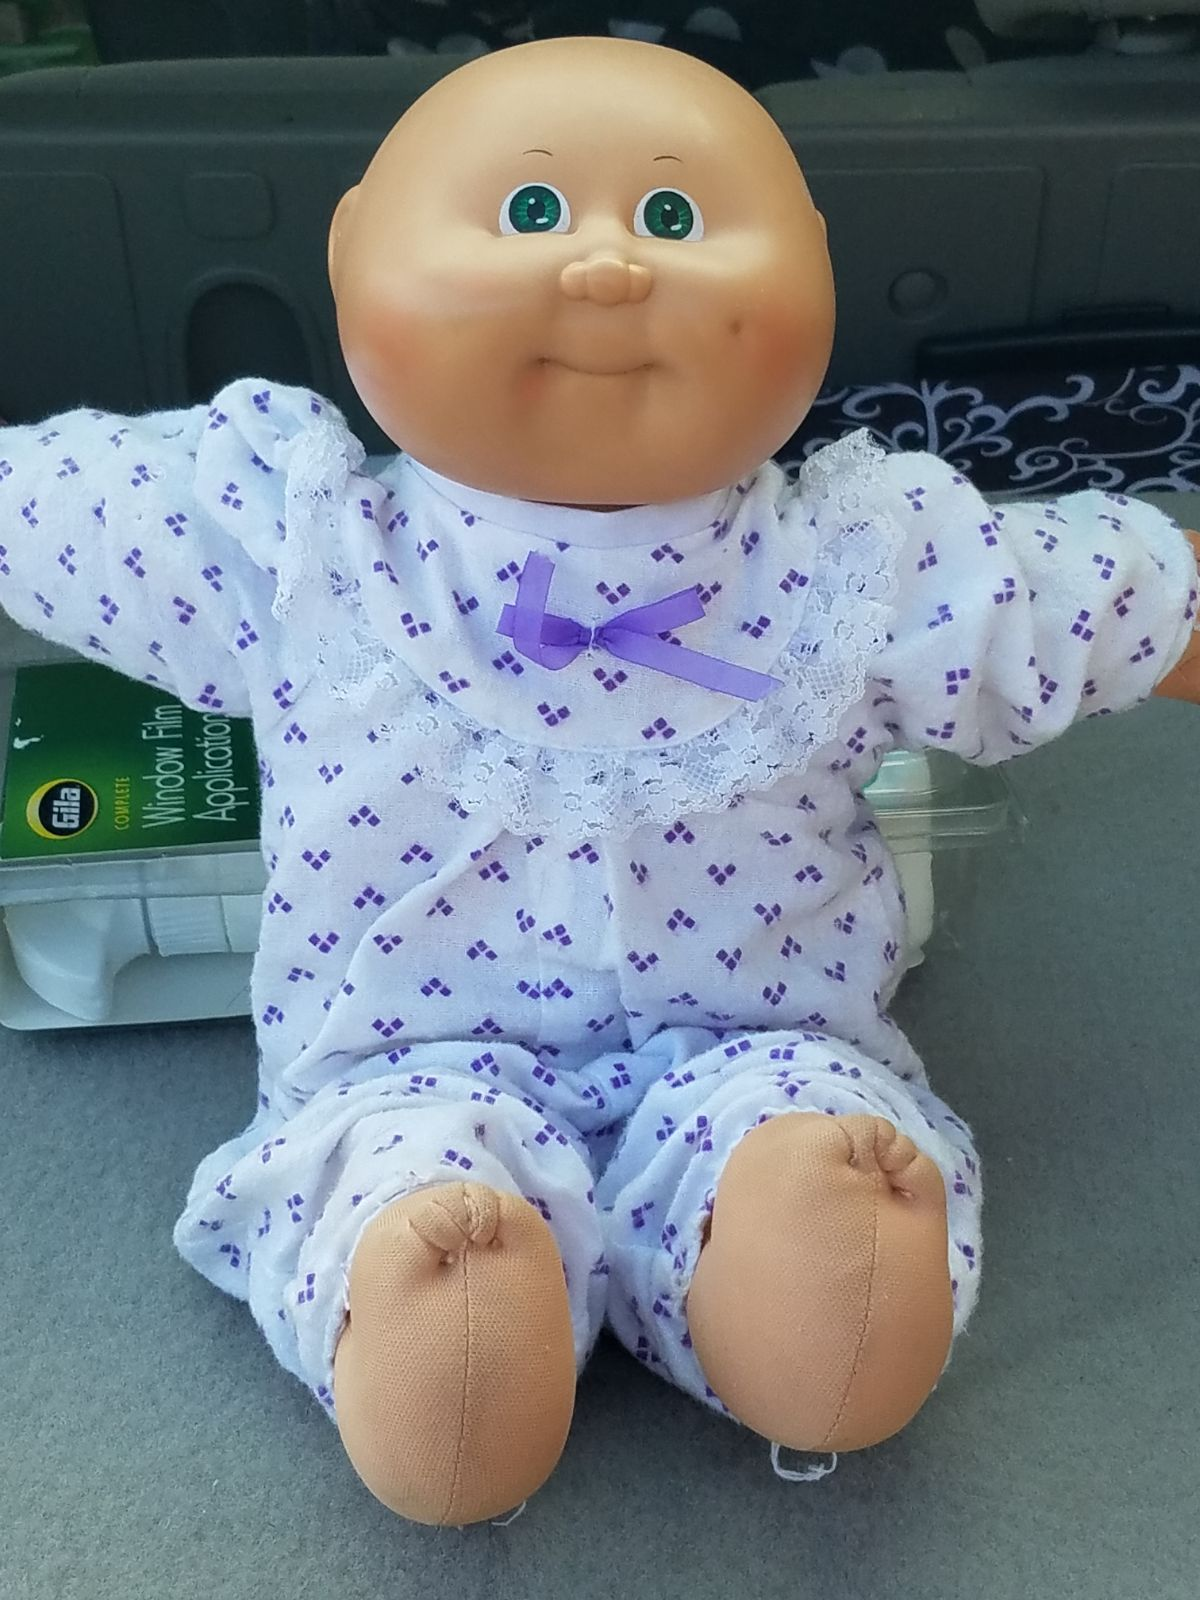 This Cabbage Patch Doll Is A Preemie And Good Condition And Could Be A Very Nice Baby Bff Cabbage Patch Dolls Cabbage Patch Babies Cabbage Patch Kids Dolls